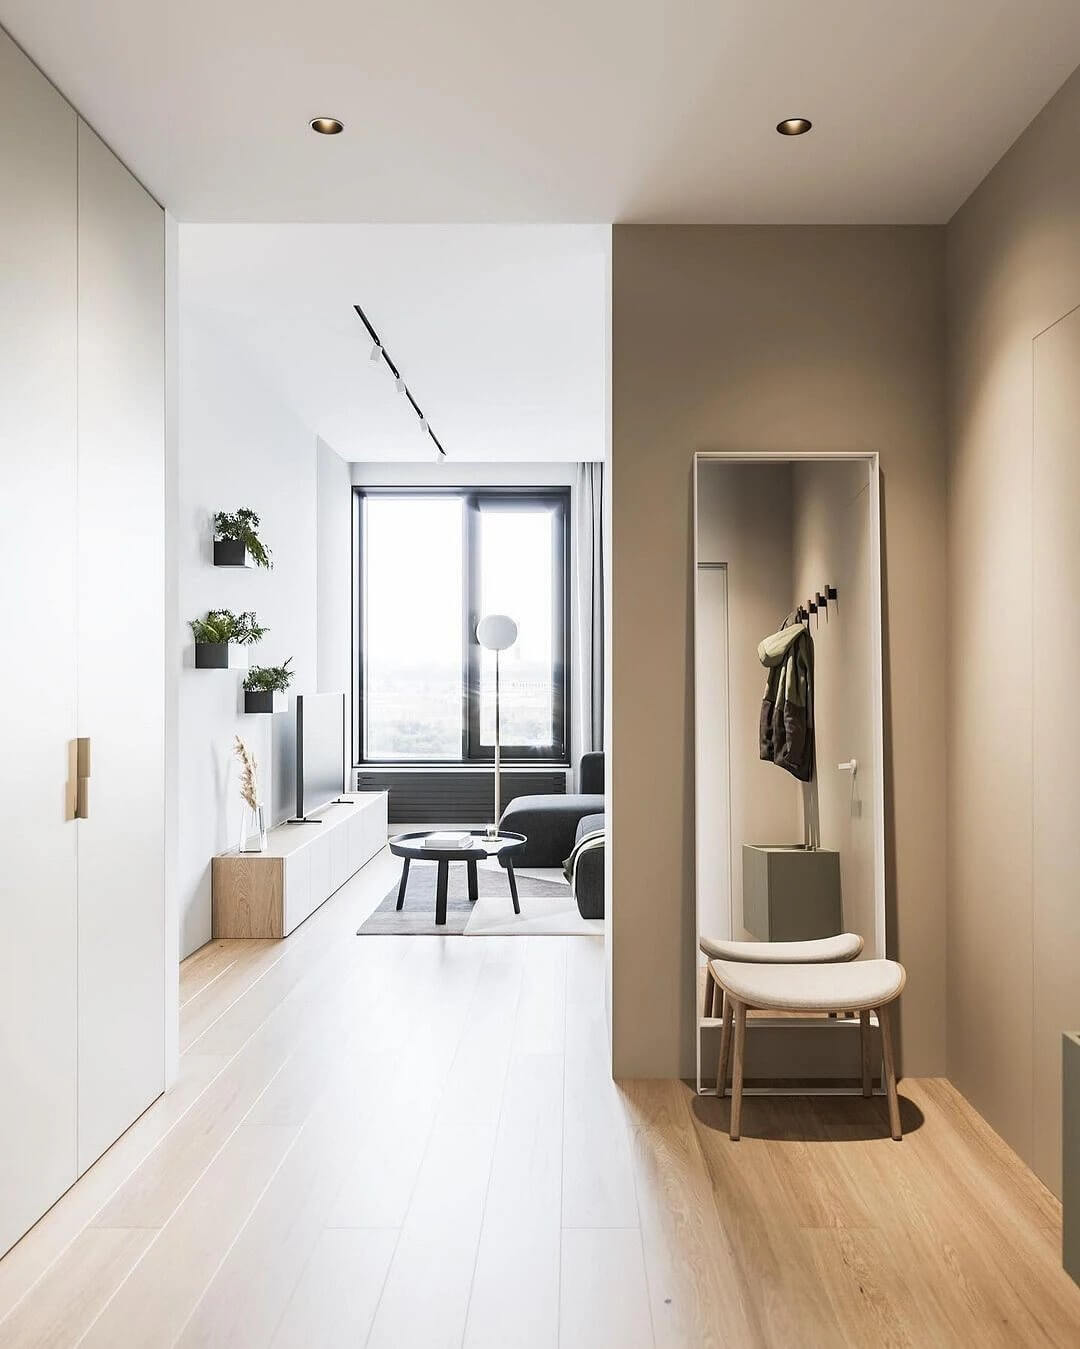 20. An interior built on minimalism in shades and details